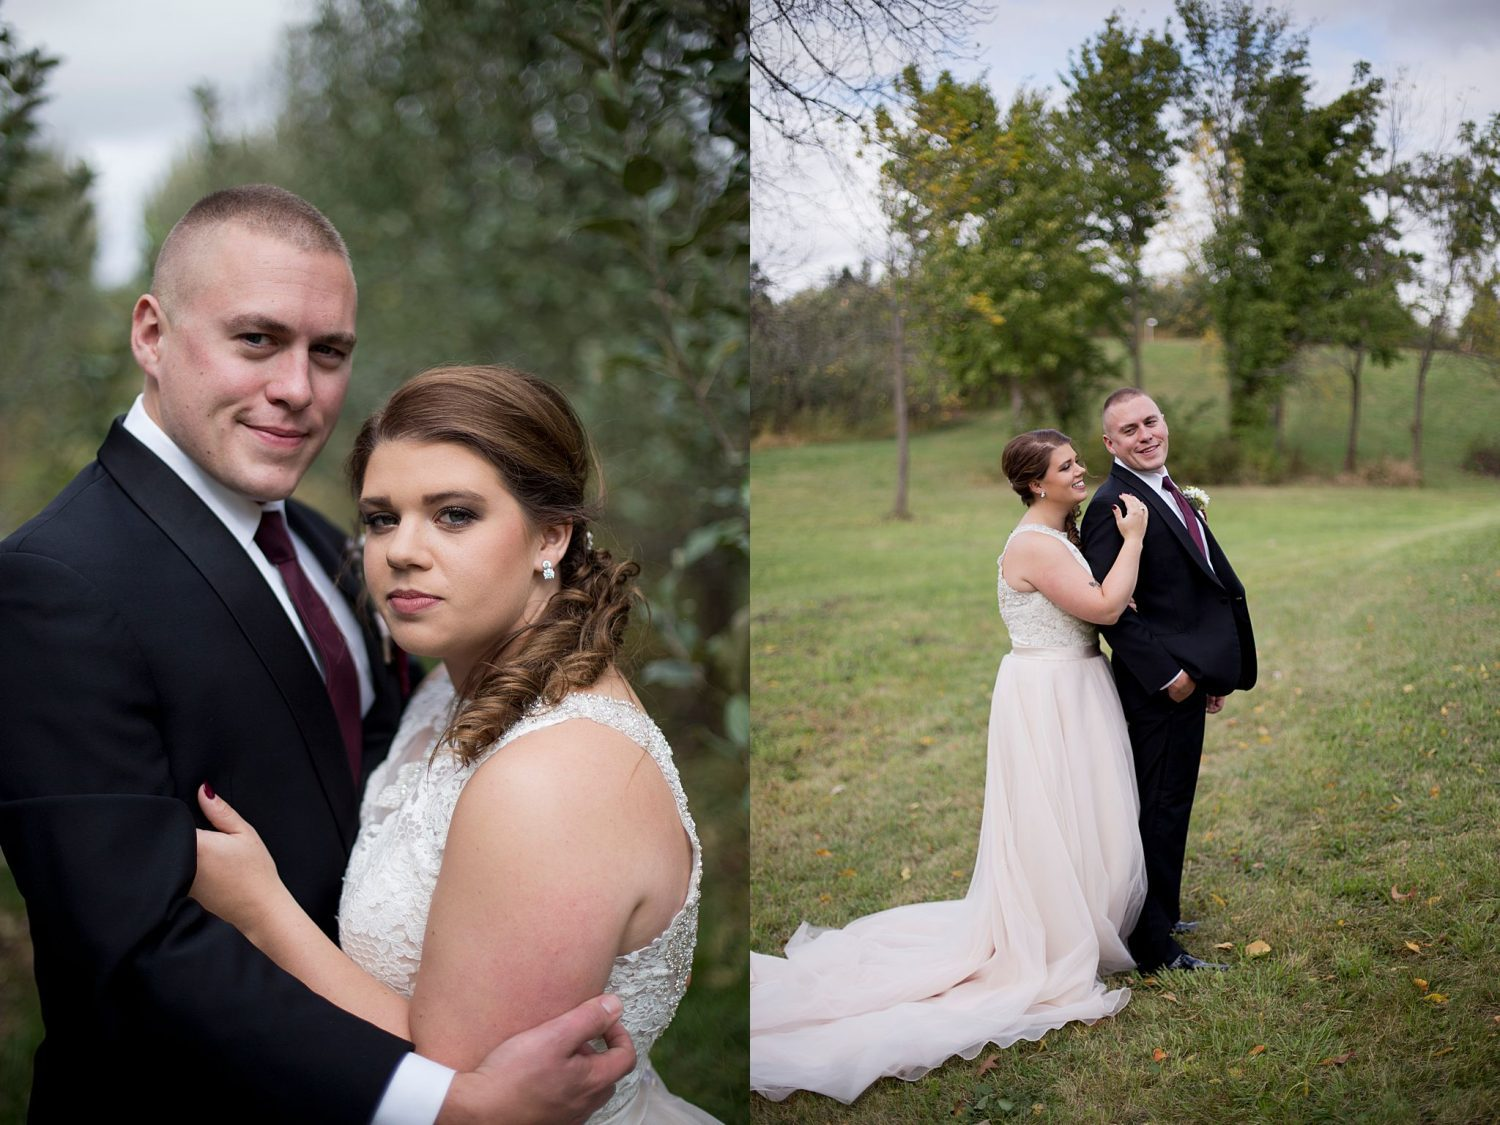 bride and groom posing together in the apple orchard